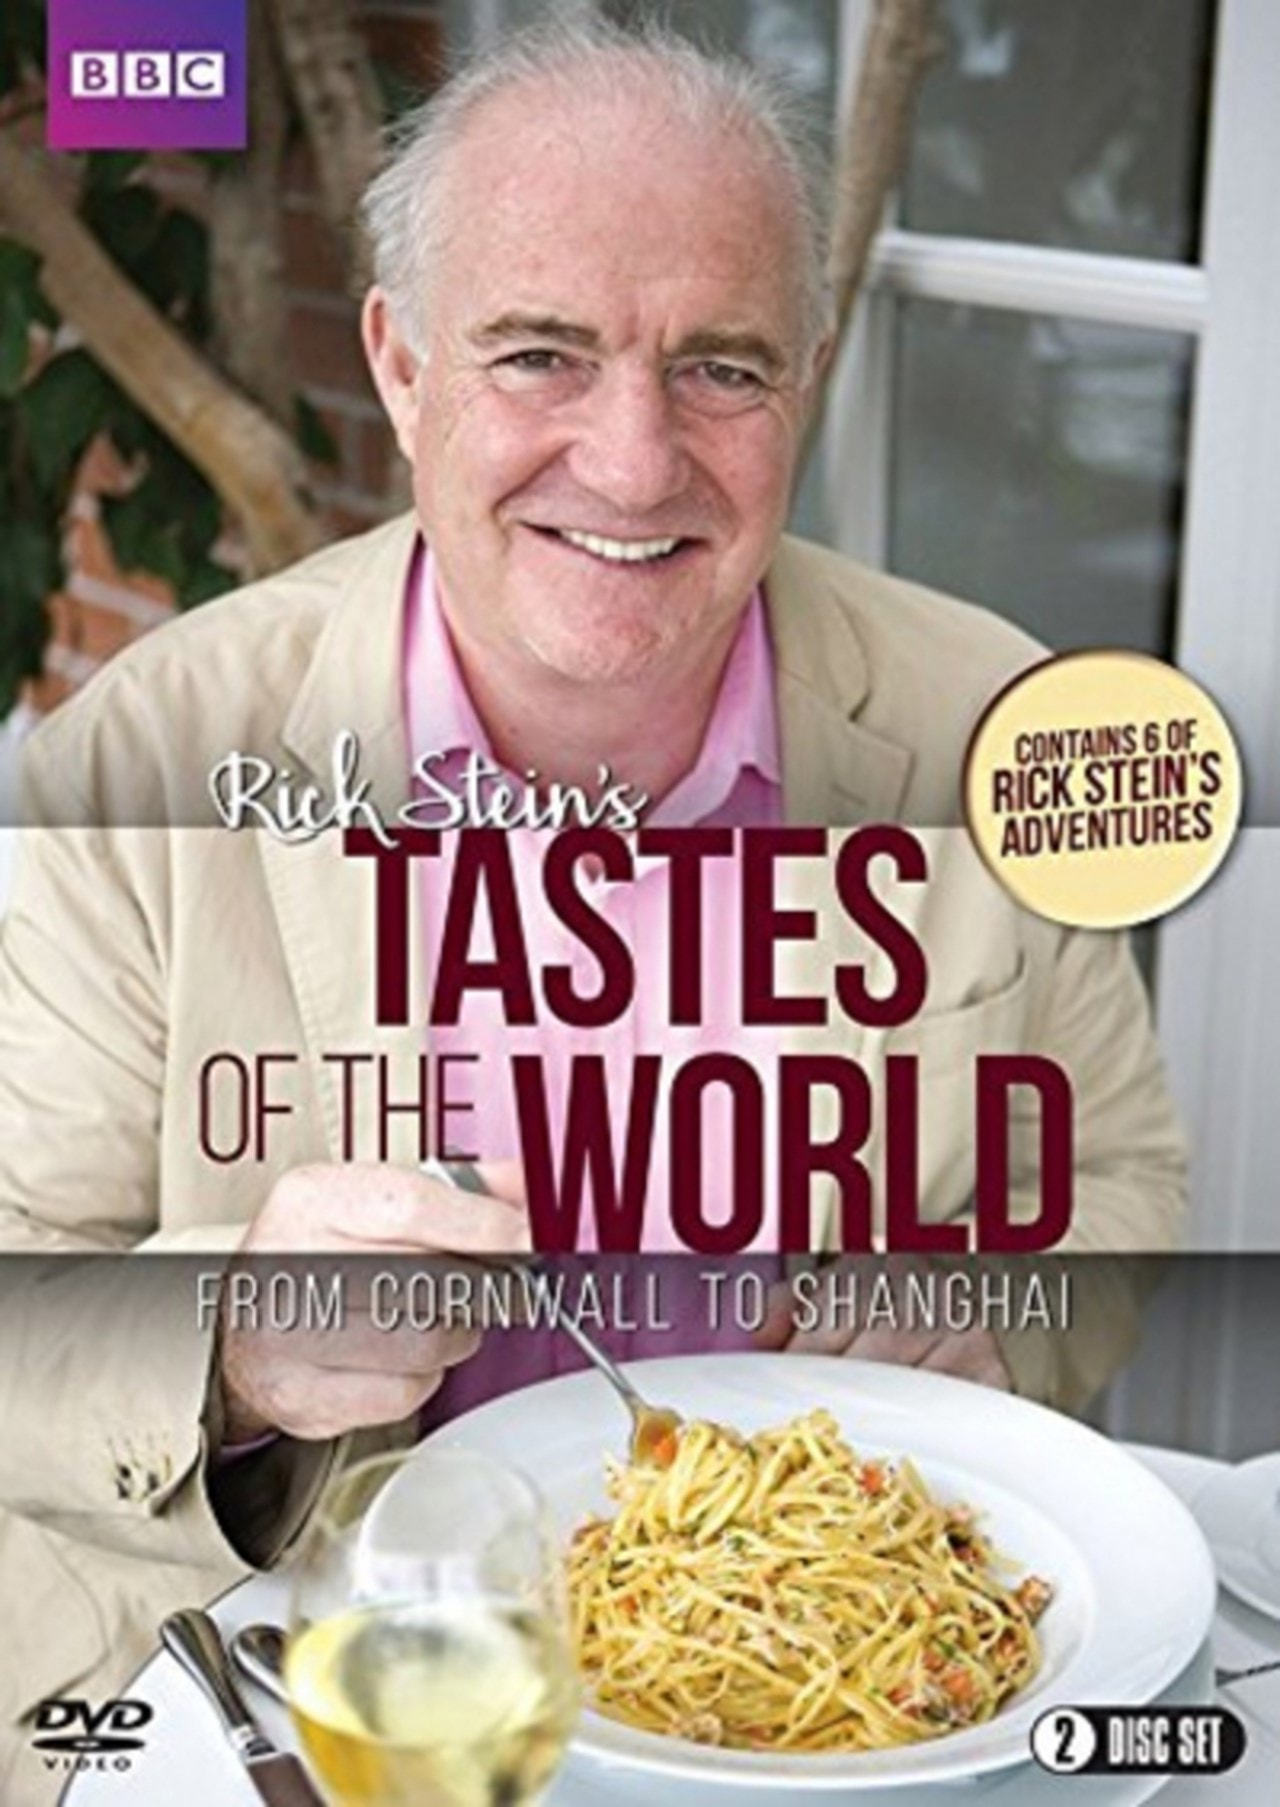 Rick Stein's Tastes of the World - From Cornwall to Shanghai - 1